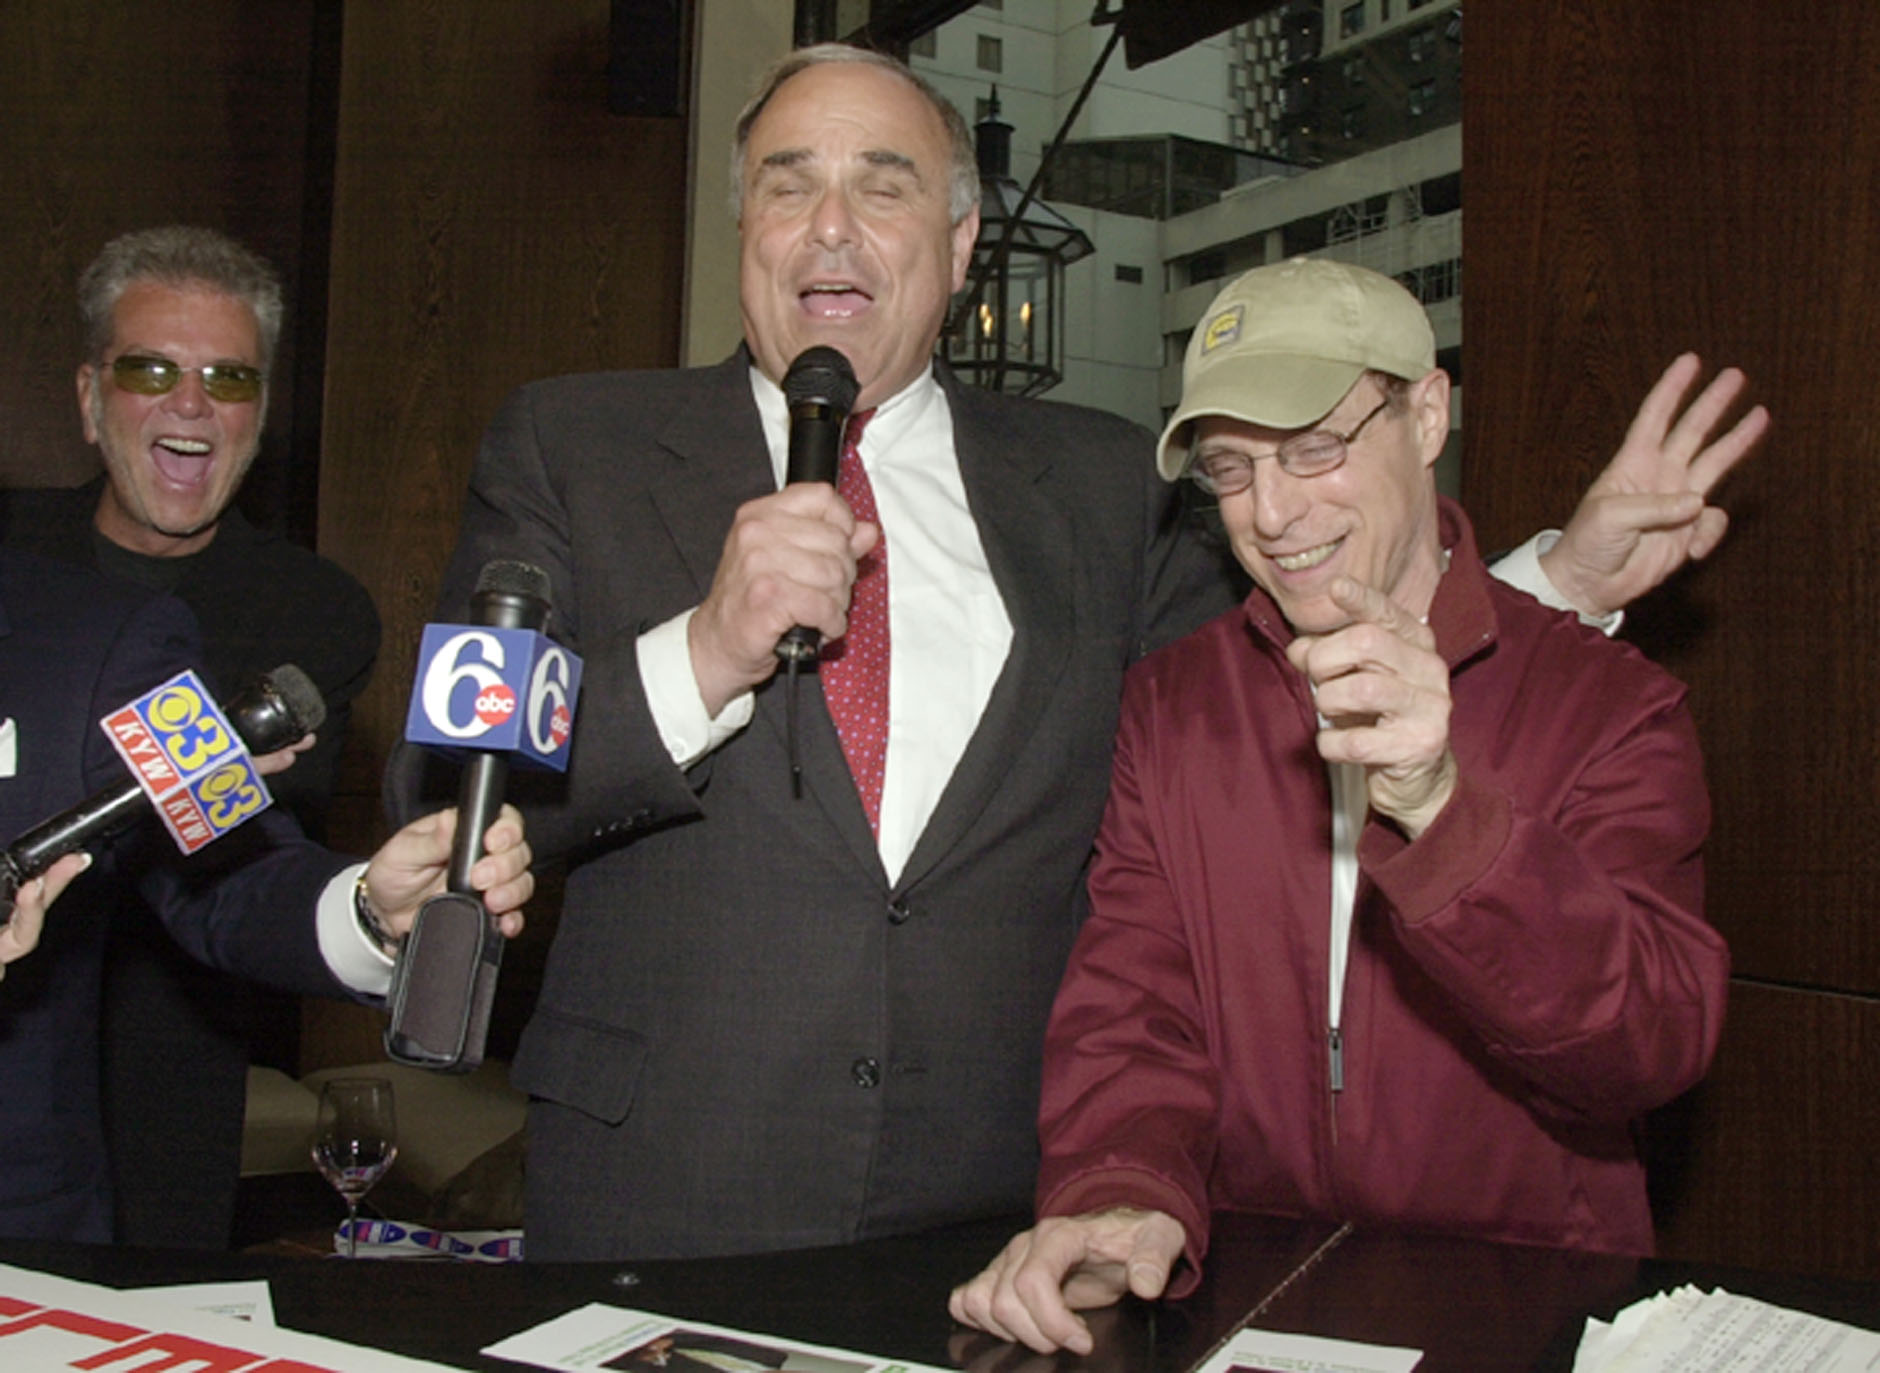 <div class='meta'><div class='origin-logo' data-origin='AP'></div><span class='caption-text' data-credit='ASSOCIATED PRESS'>Ed Rendell with radio personality Jerry Blavat during a campaign stop while running for Governor in 2002 (AP Photo/Chris Gardner)</span></div>